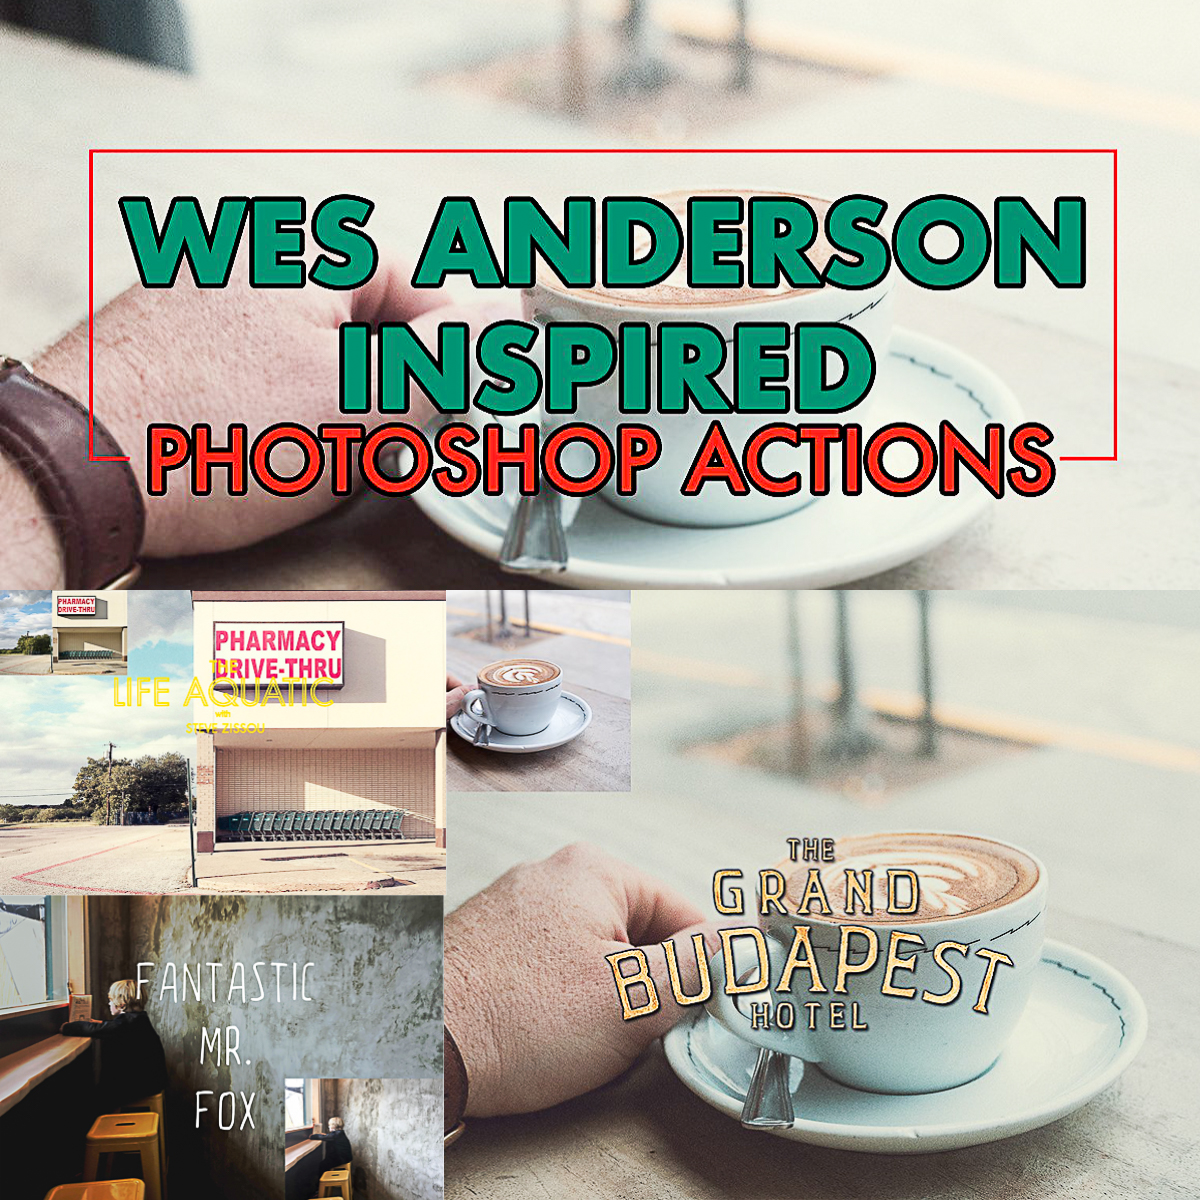 Wes Anderson Photoshop Actions | Free download